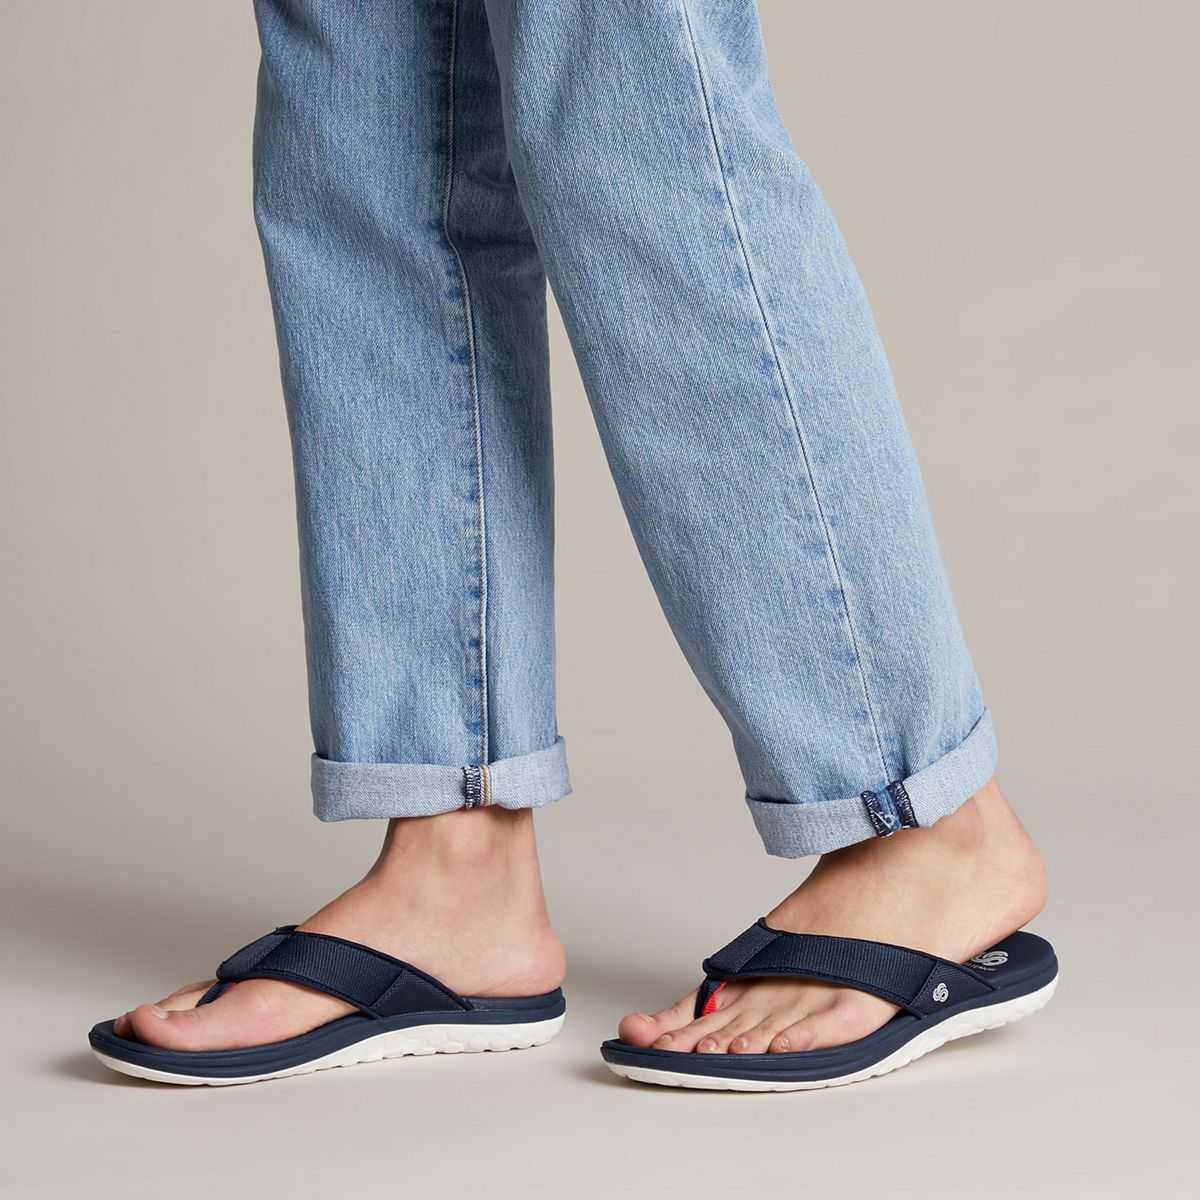 perfume Chorrito Teórico  Step Beat Dune Navy - Clarks Canada Official Site | Clarks Shoes